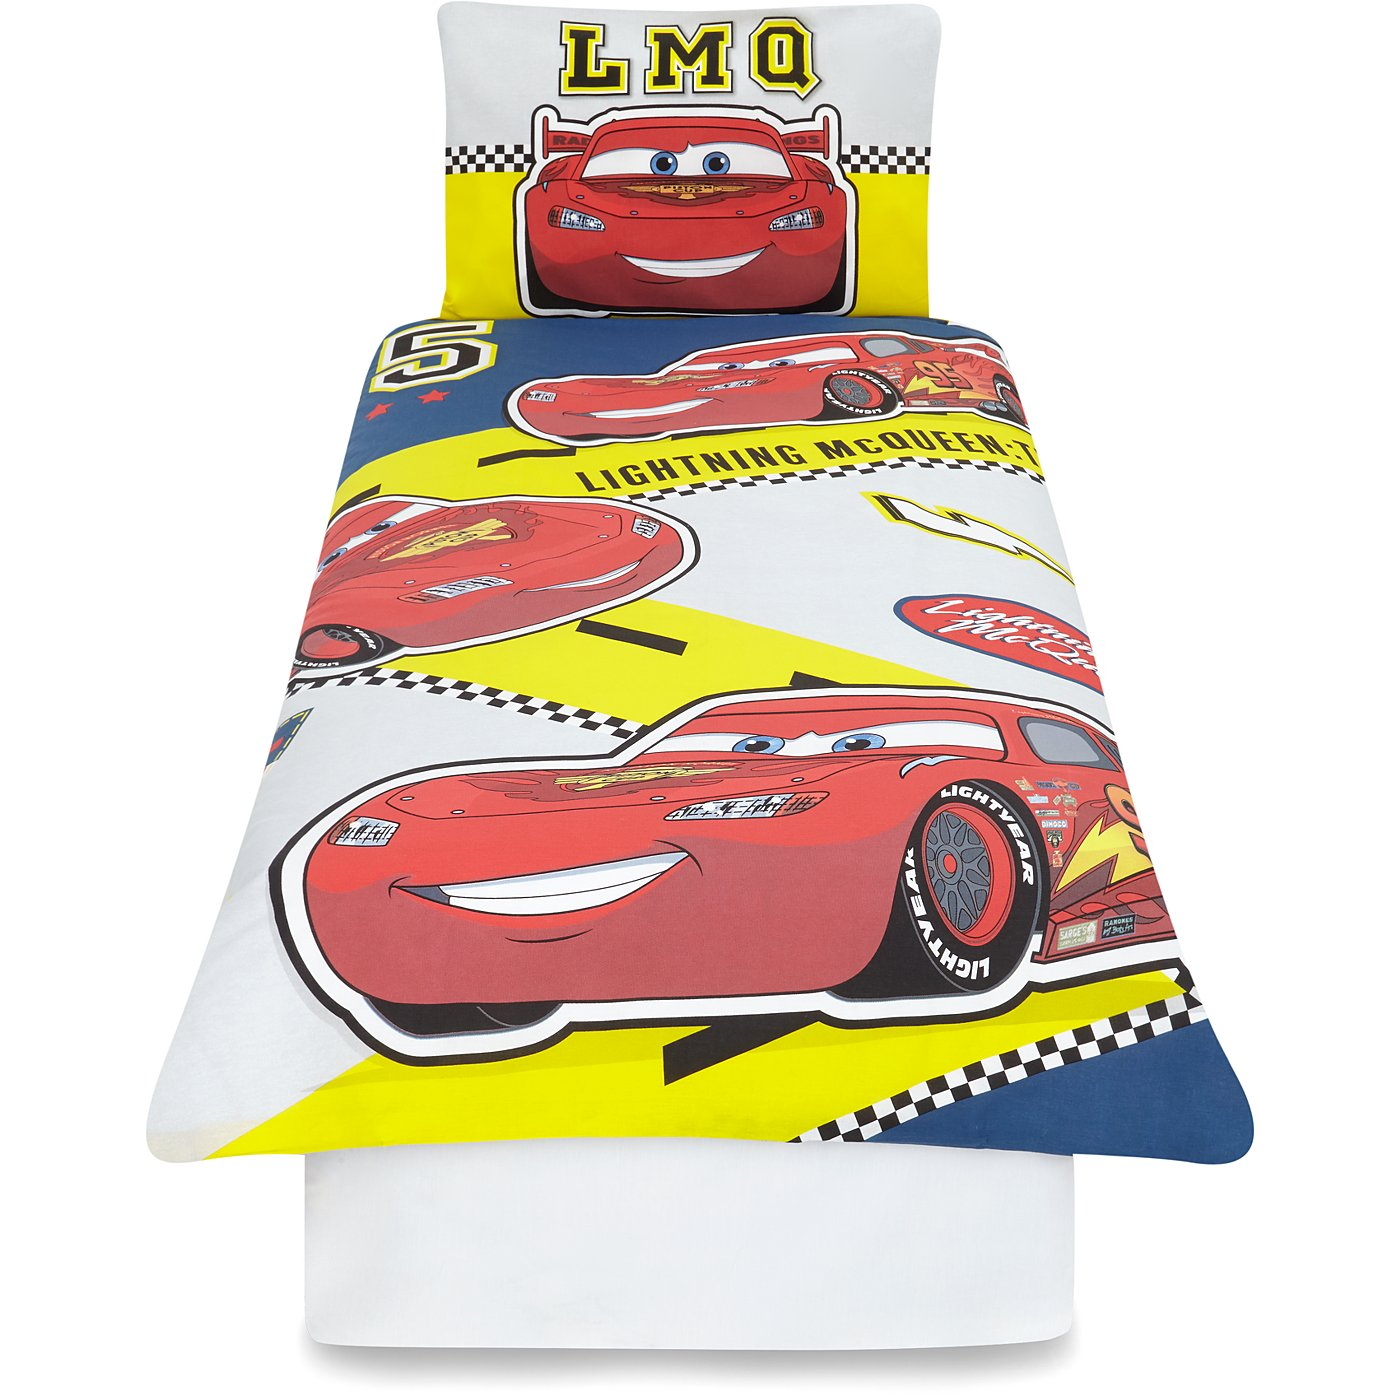 Disney Cars Bedroom Collection | George on disney cars mcqueen mater, disney cars dishes, disney cars twin bedding comforter set, disney cars kitchen, sweet dreams bedroom set, disney cars tv, disney cars wedding set, disney cars party set, spiderman bedroom set, disney cars bench, disney cars bed, boys race car bedroom set, dr who bedroom set, shrek bedroom set, disney cars table set, disney cars curtain rod, disney cars crib sheets, the wiggles bedroom set, disney pixar cars twin sheet set, disney cars bedding set full,